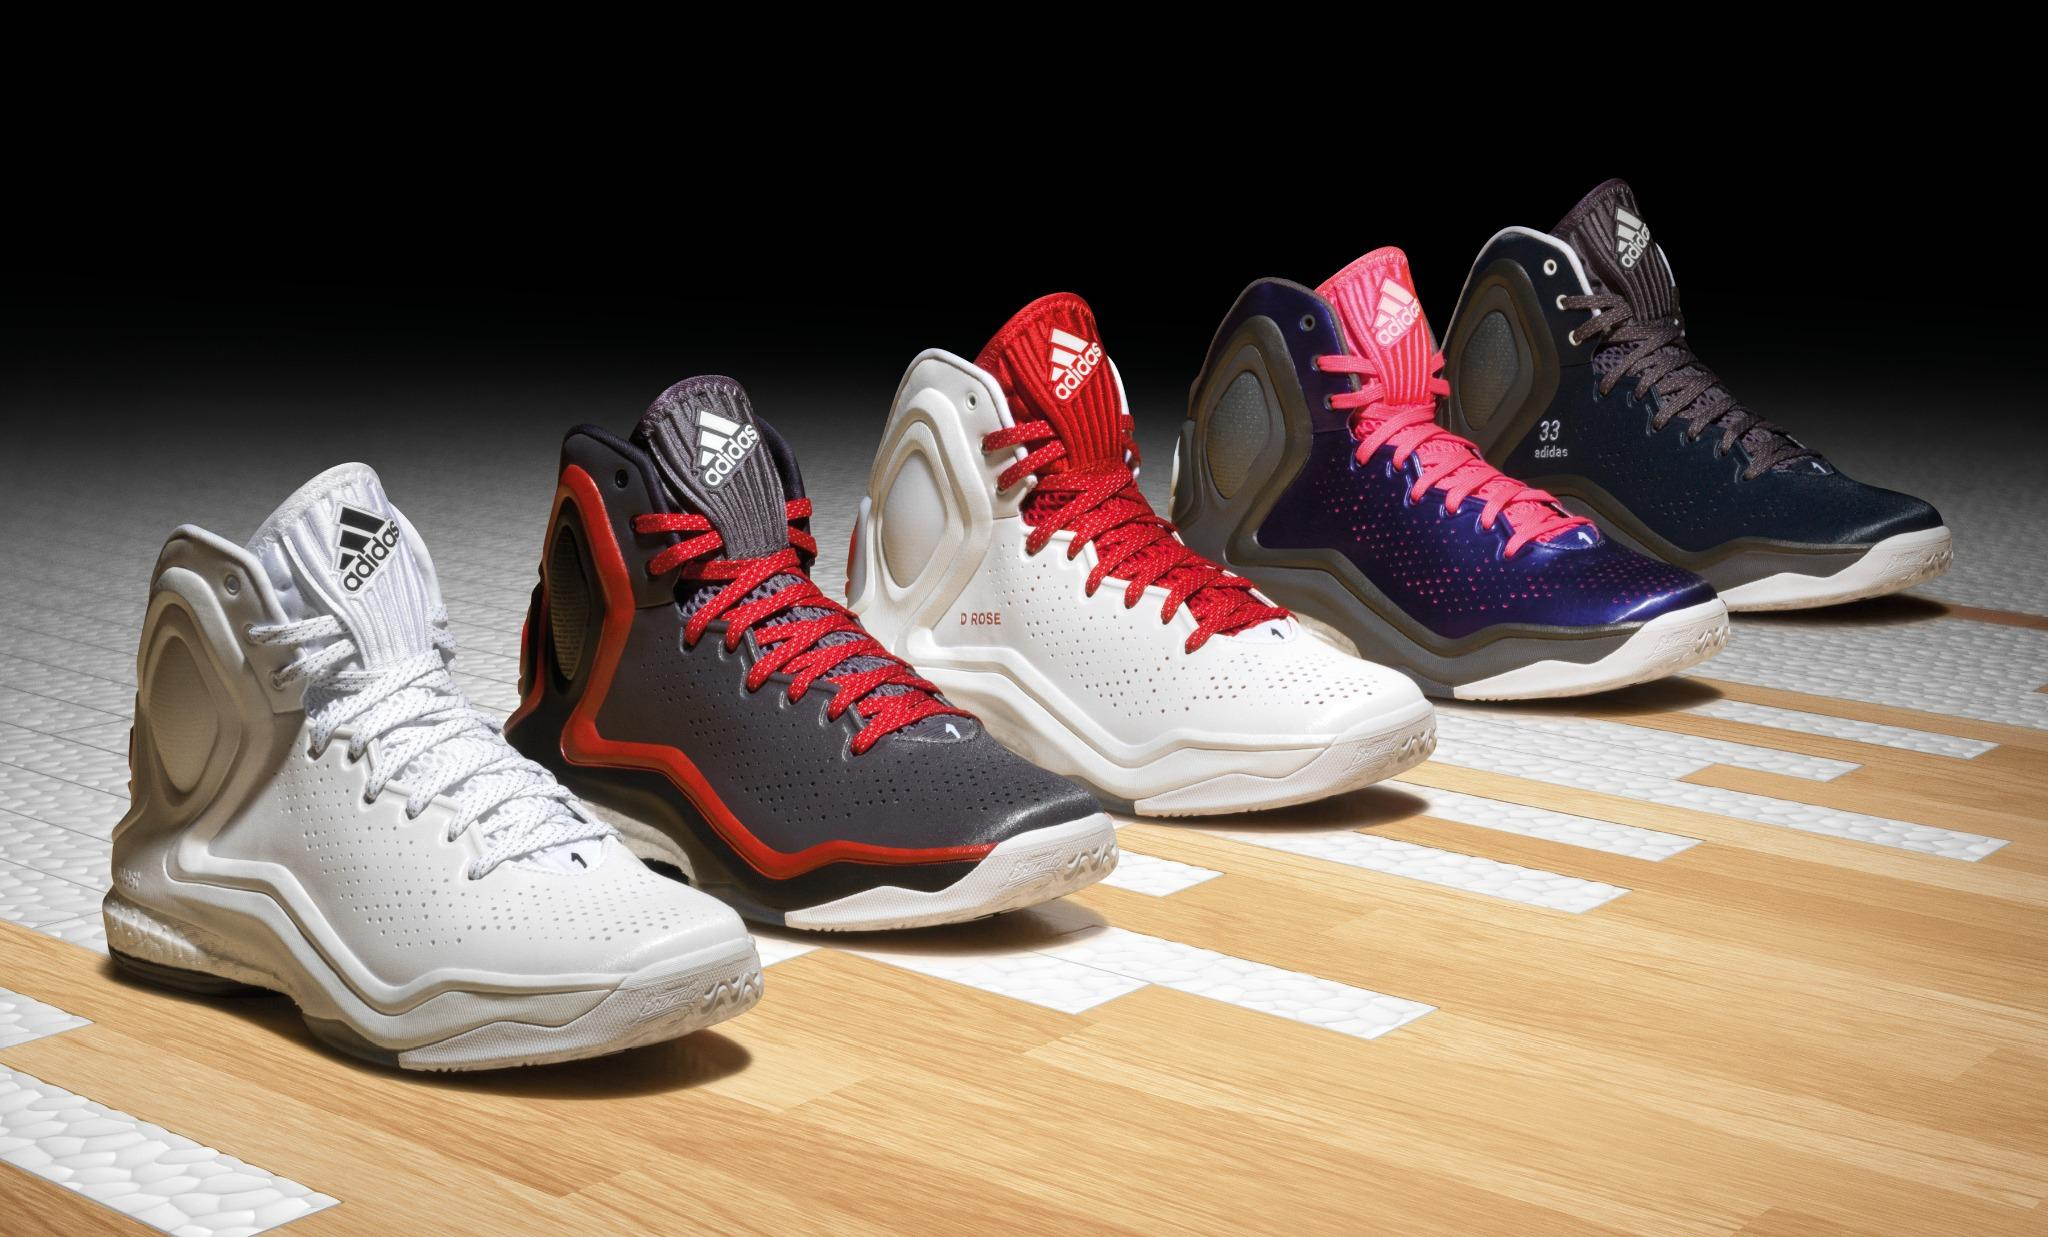 Adidas D Rose 5 Boost White Red